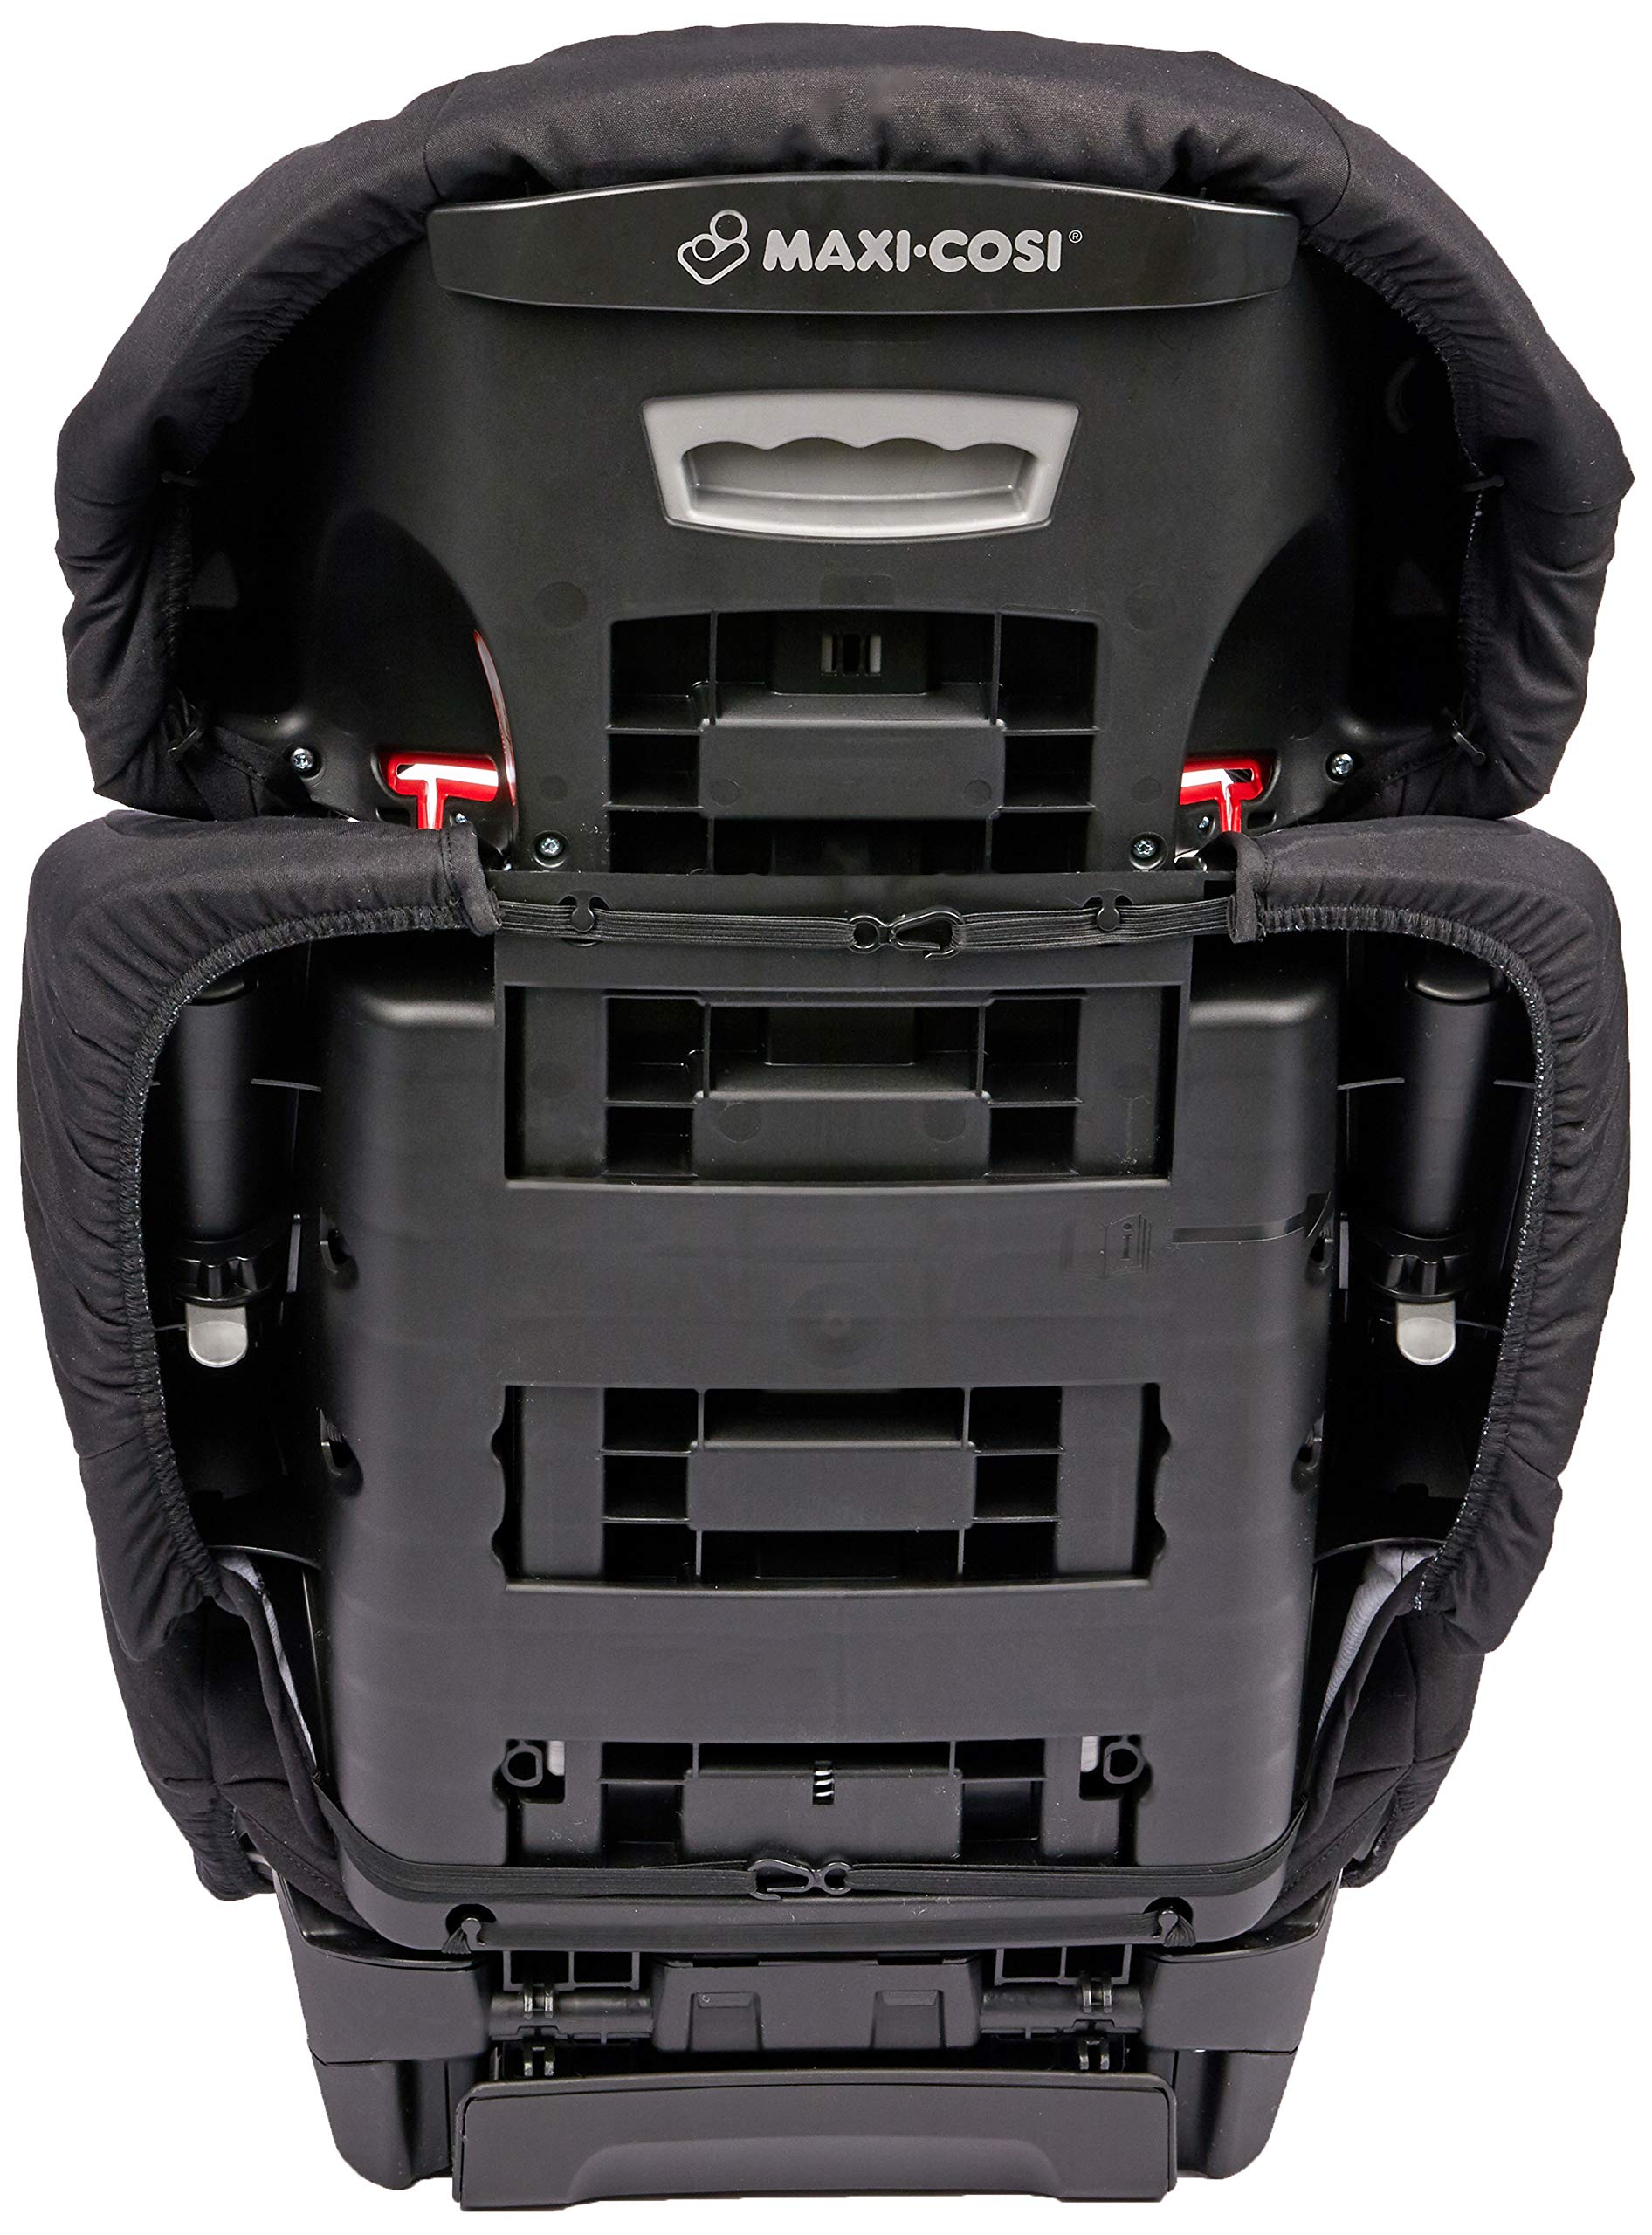 Maxi-Cosi Rodi AirProtect Child Car Seat, Lightweight Highback Booster, 3.5-12 Years, 15-36 kg, Frequency Black Maxi-Cosi Child car seat, suitable from 3.5 to 12 years (15 - 36kg) Easily install this safe car seat with a 3-point seat belt and attach the anchorage point in the head rest through your cars head rest Patented air protect technology in headrest reduces the risk of head and neck injuries up to 20 percent 6